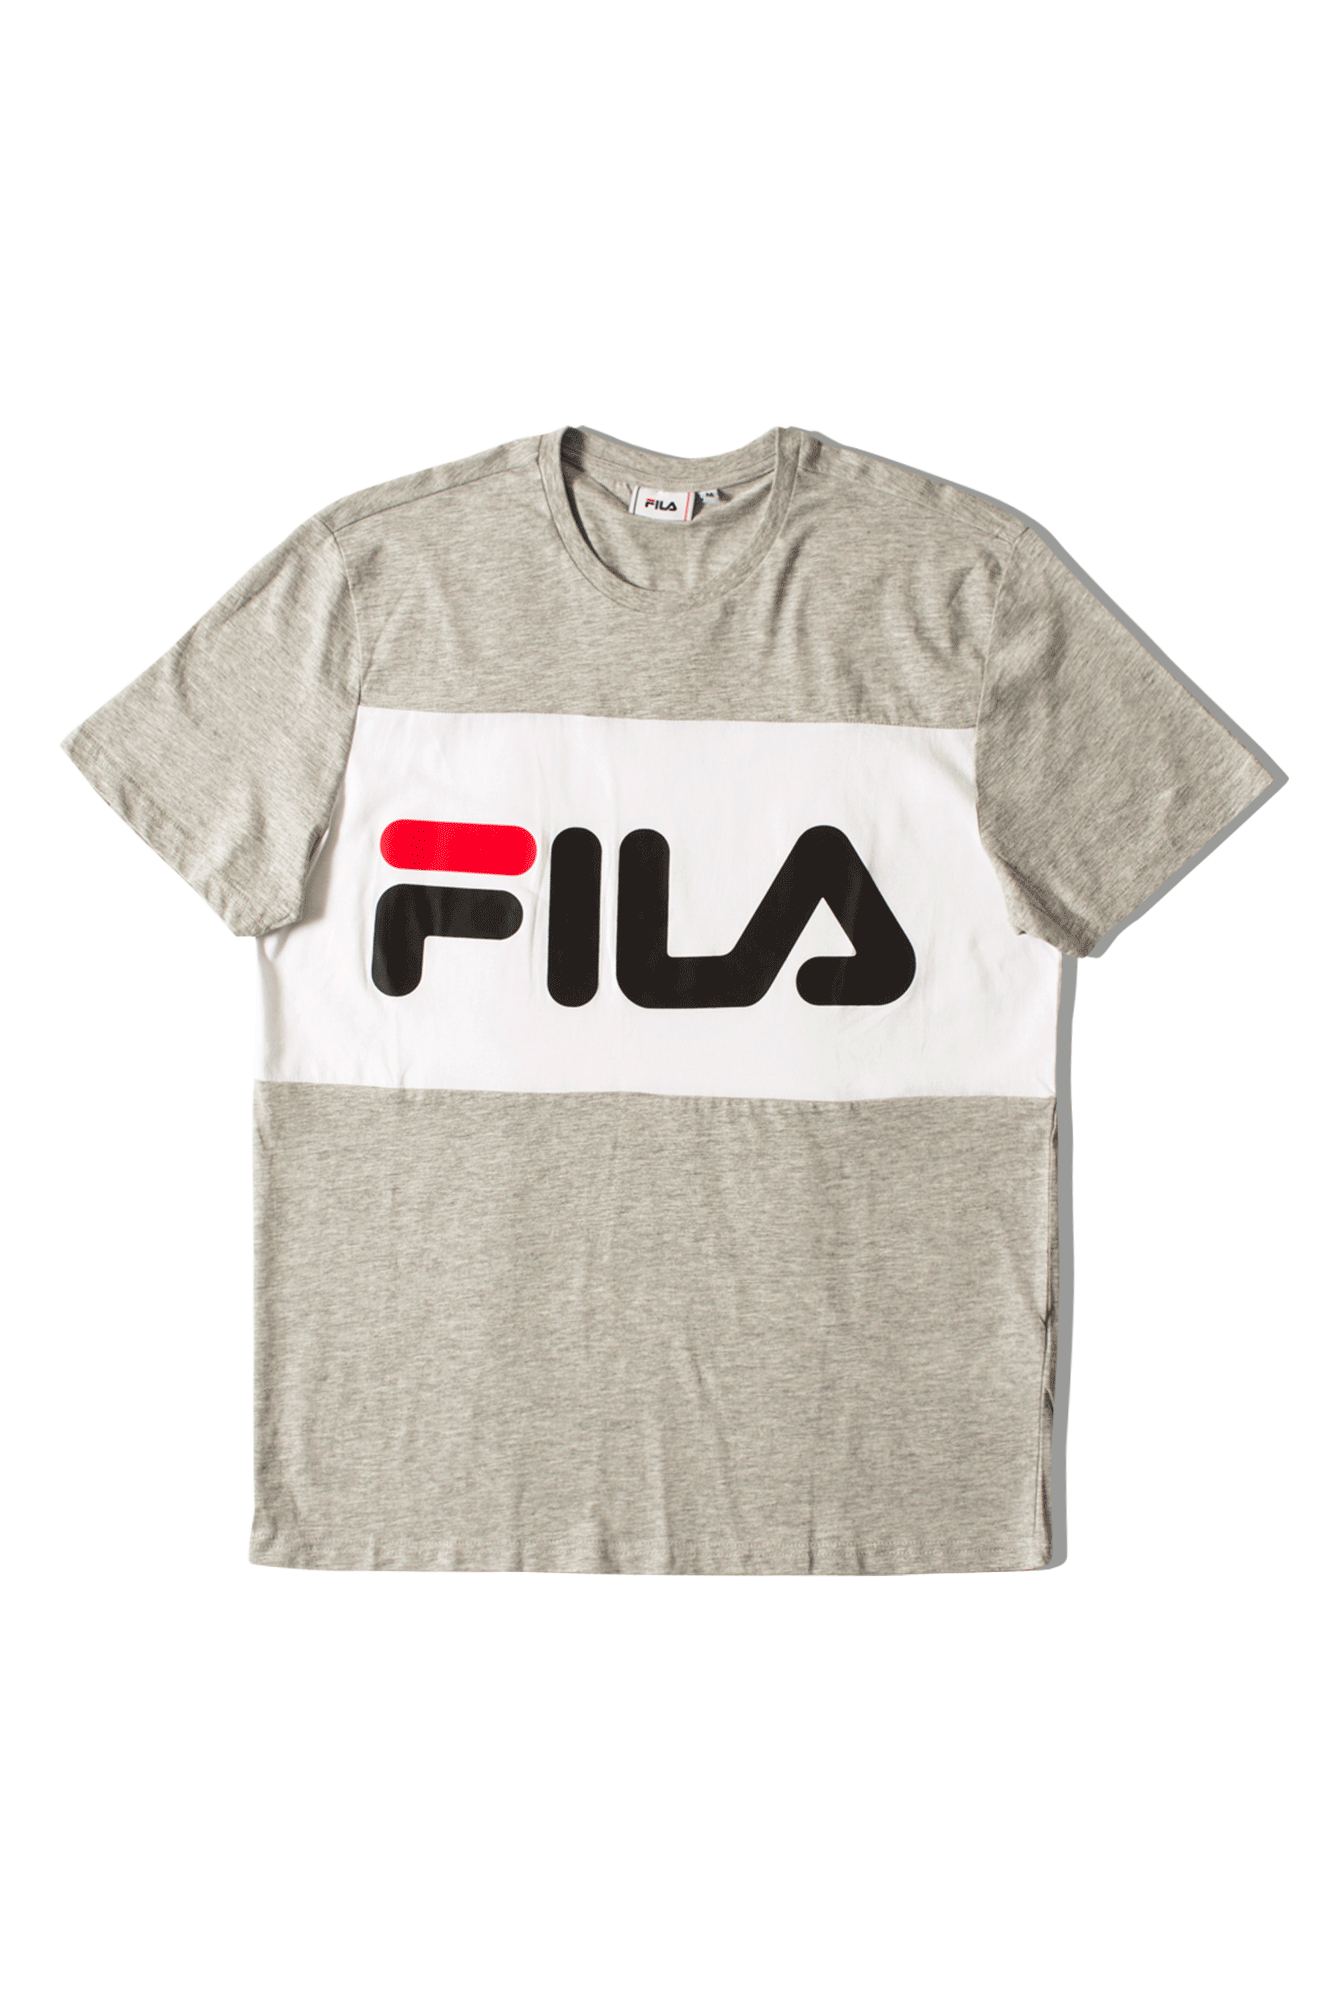 Fila T-Shirts Day Tee Grey 681244A068#000#C0009#S - One Block Down